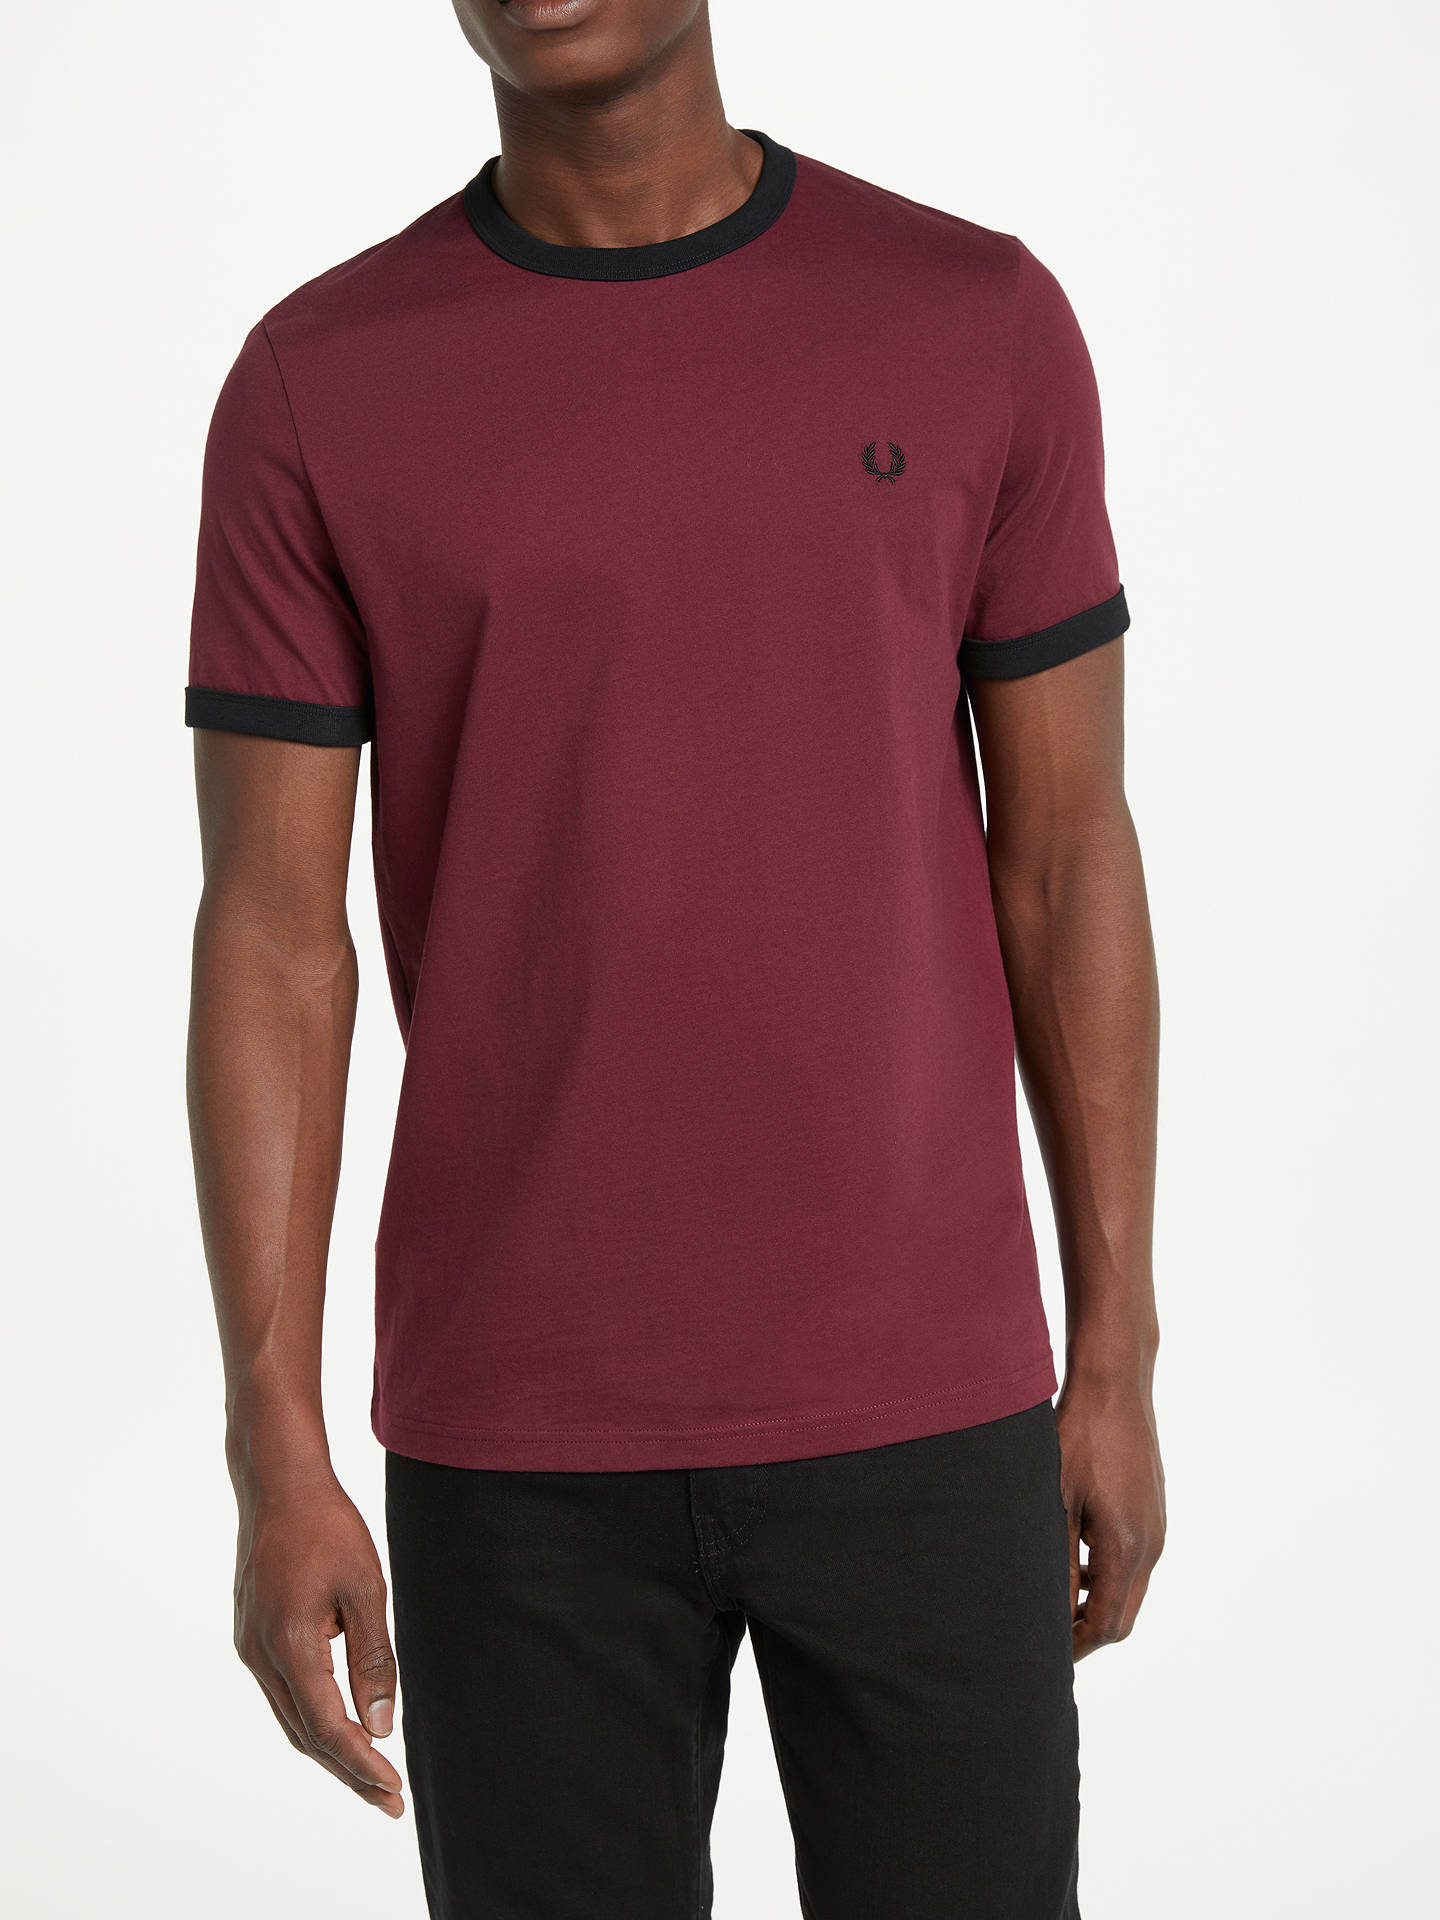 ac706ffd Buy Fred Perry Ringer Crew Neck T-Shirt, Port, S Online at johnlewis ...